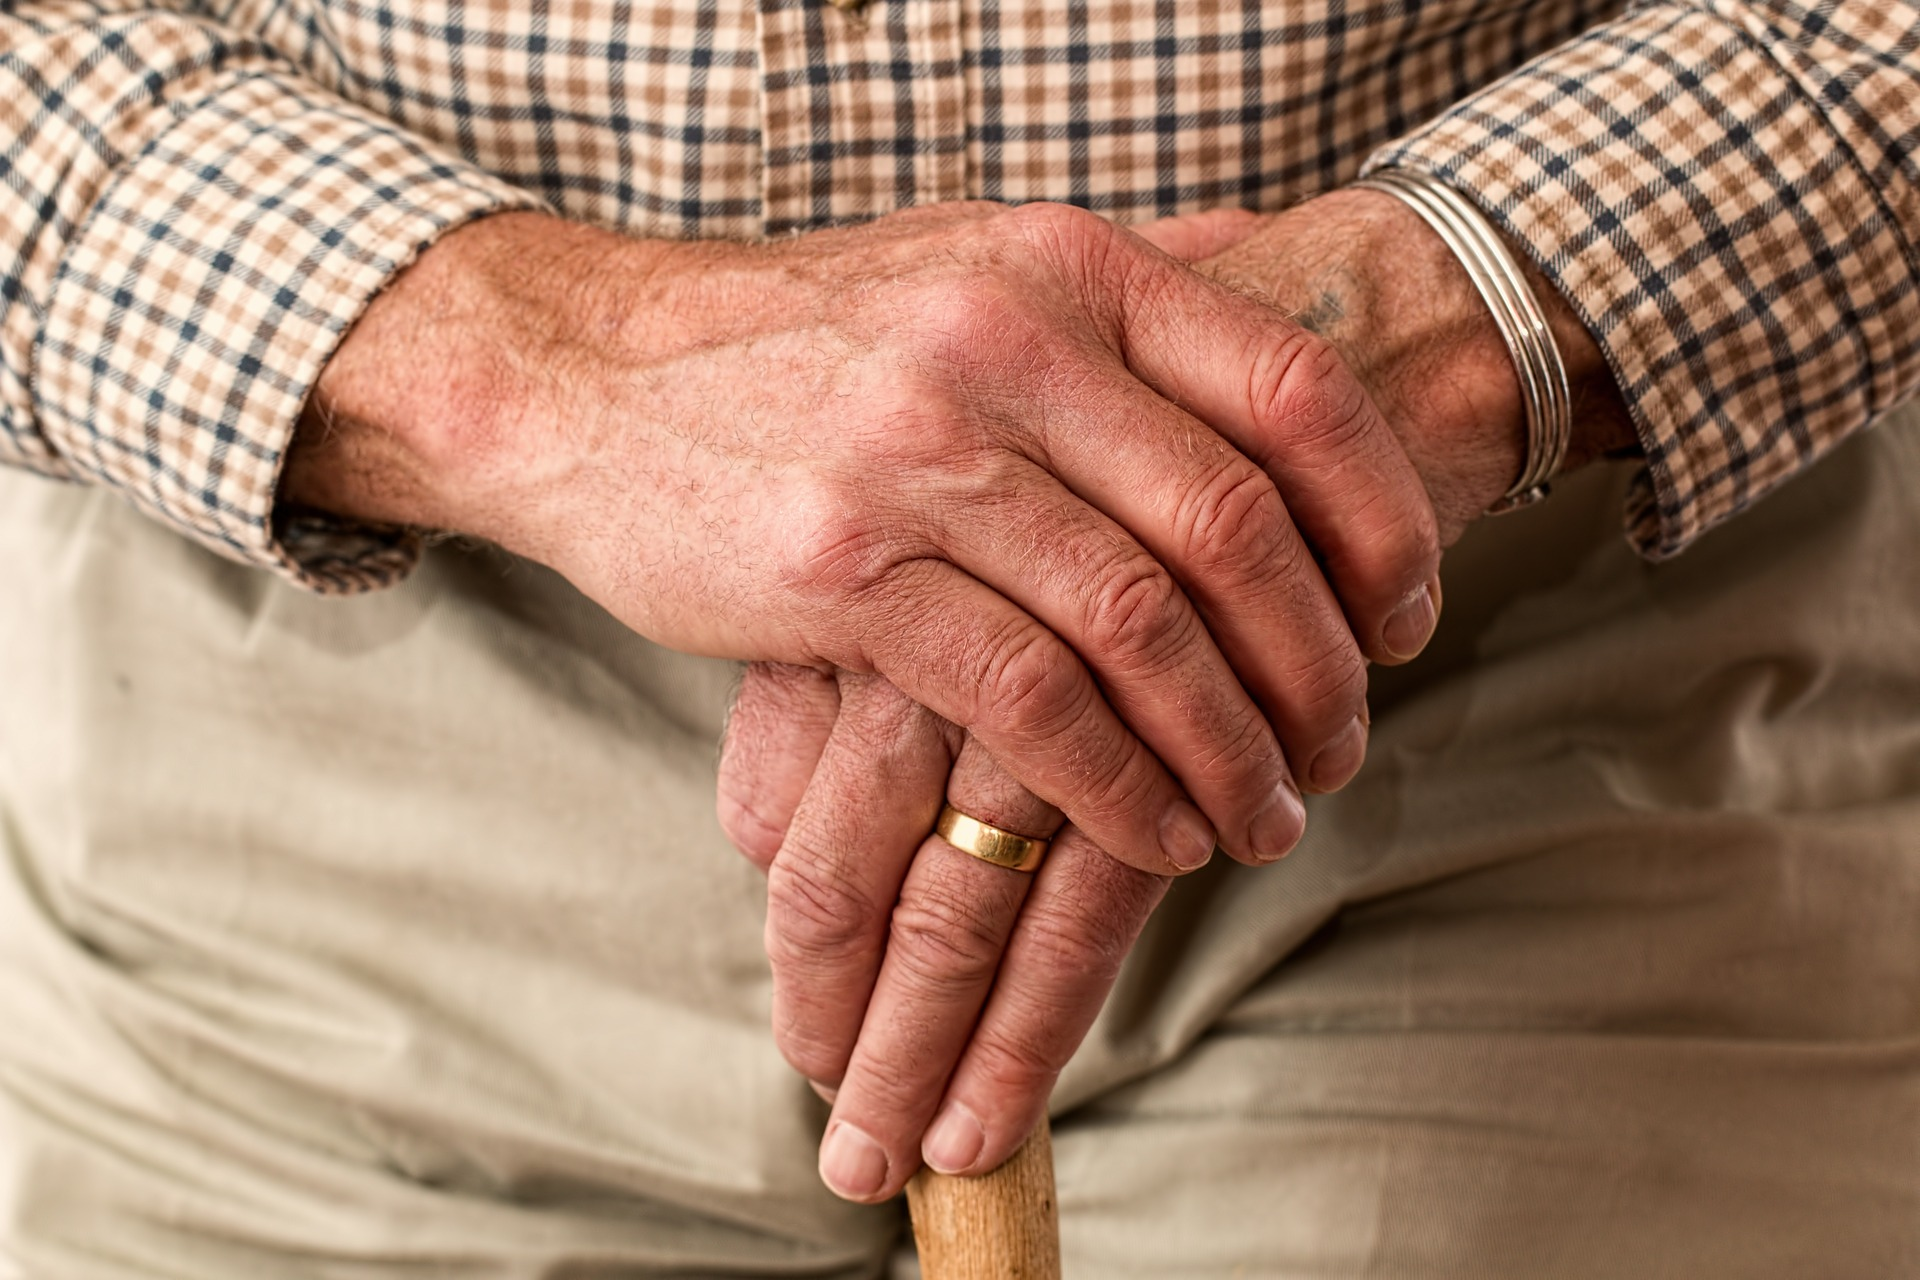 Your parents need a will. How to convince them it's time.